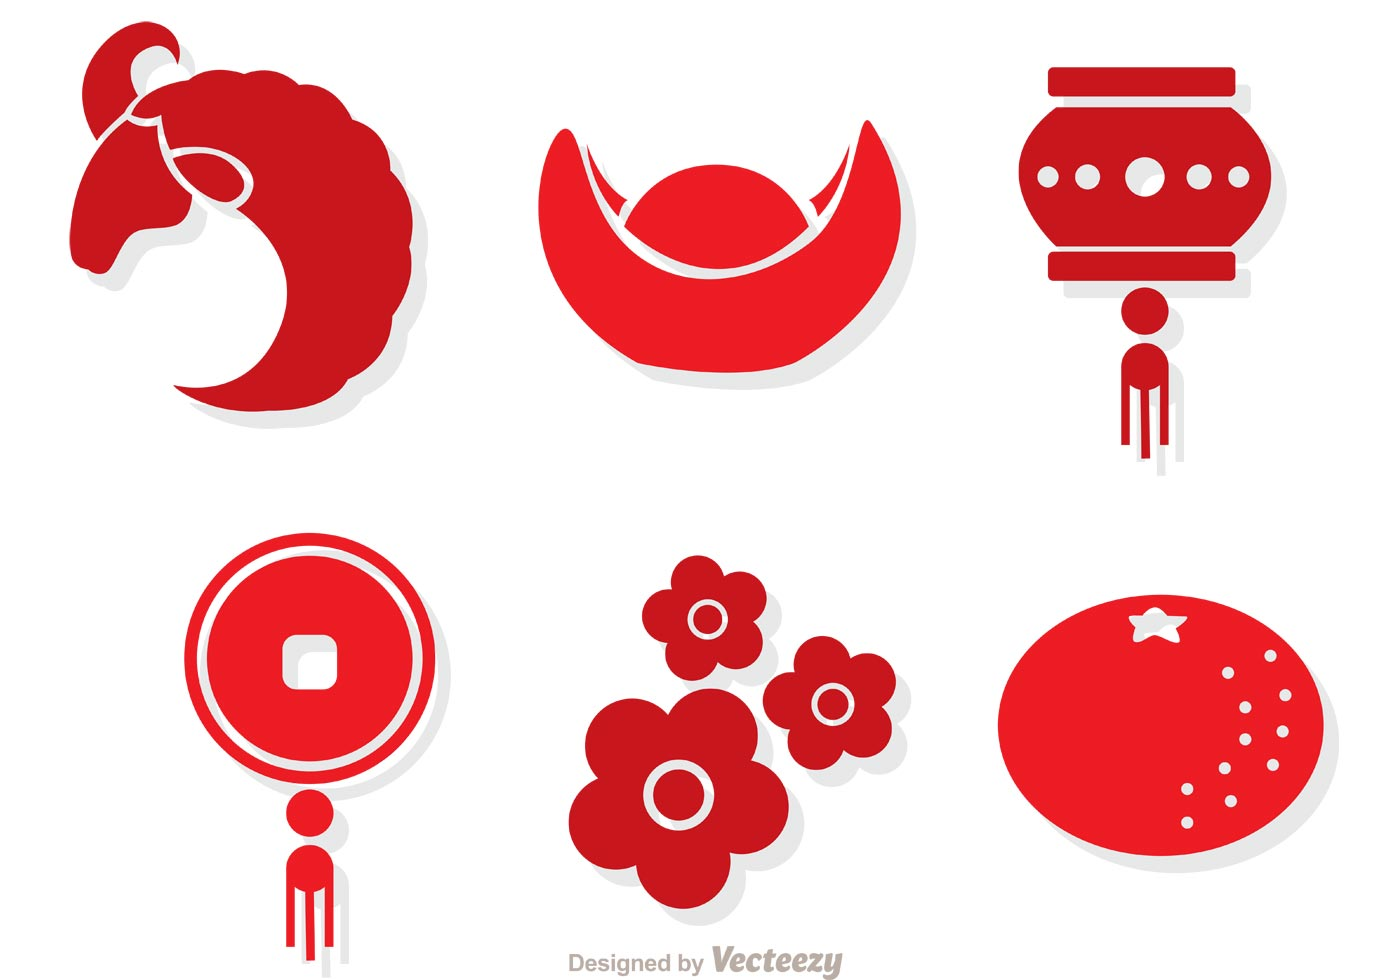 Red chinese lunar new year vectors download free vector art stock